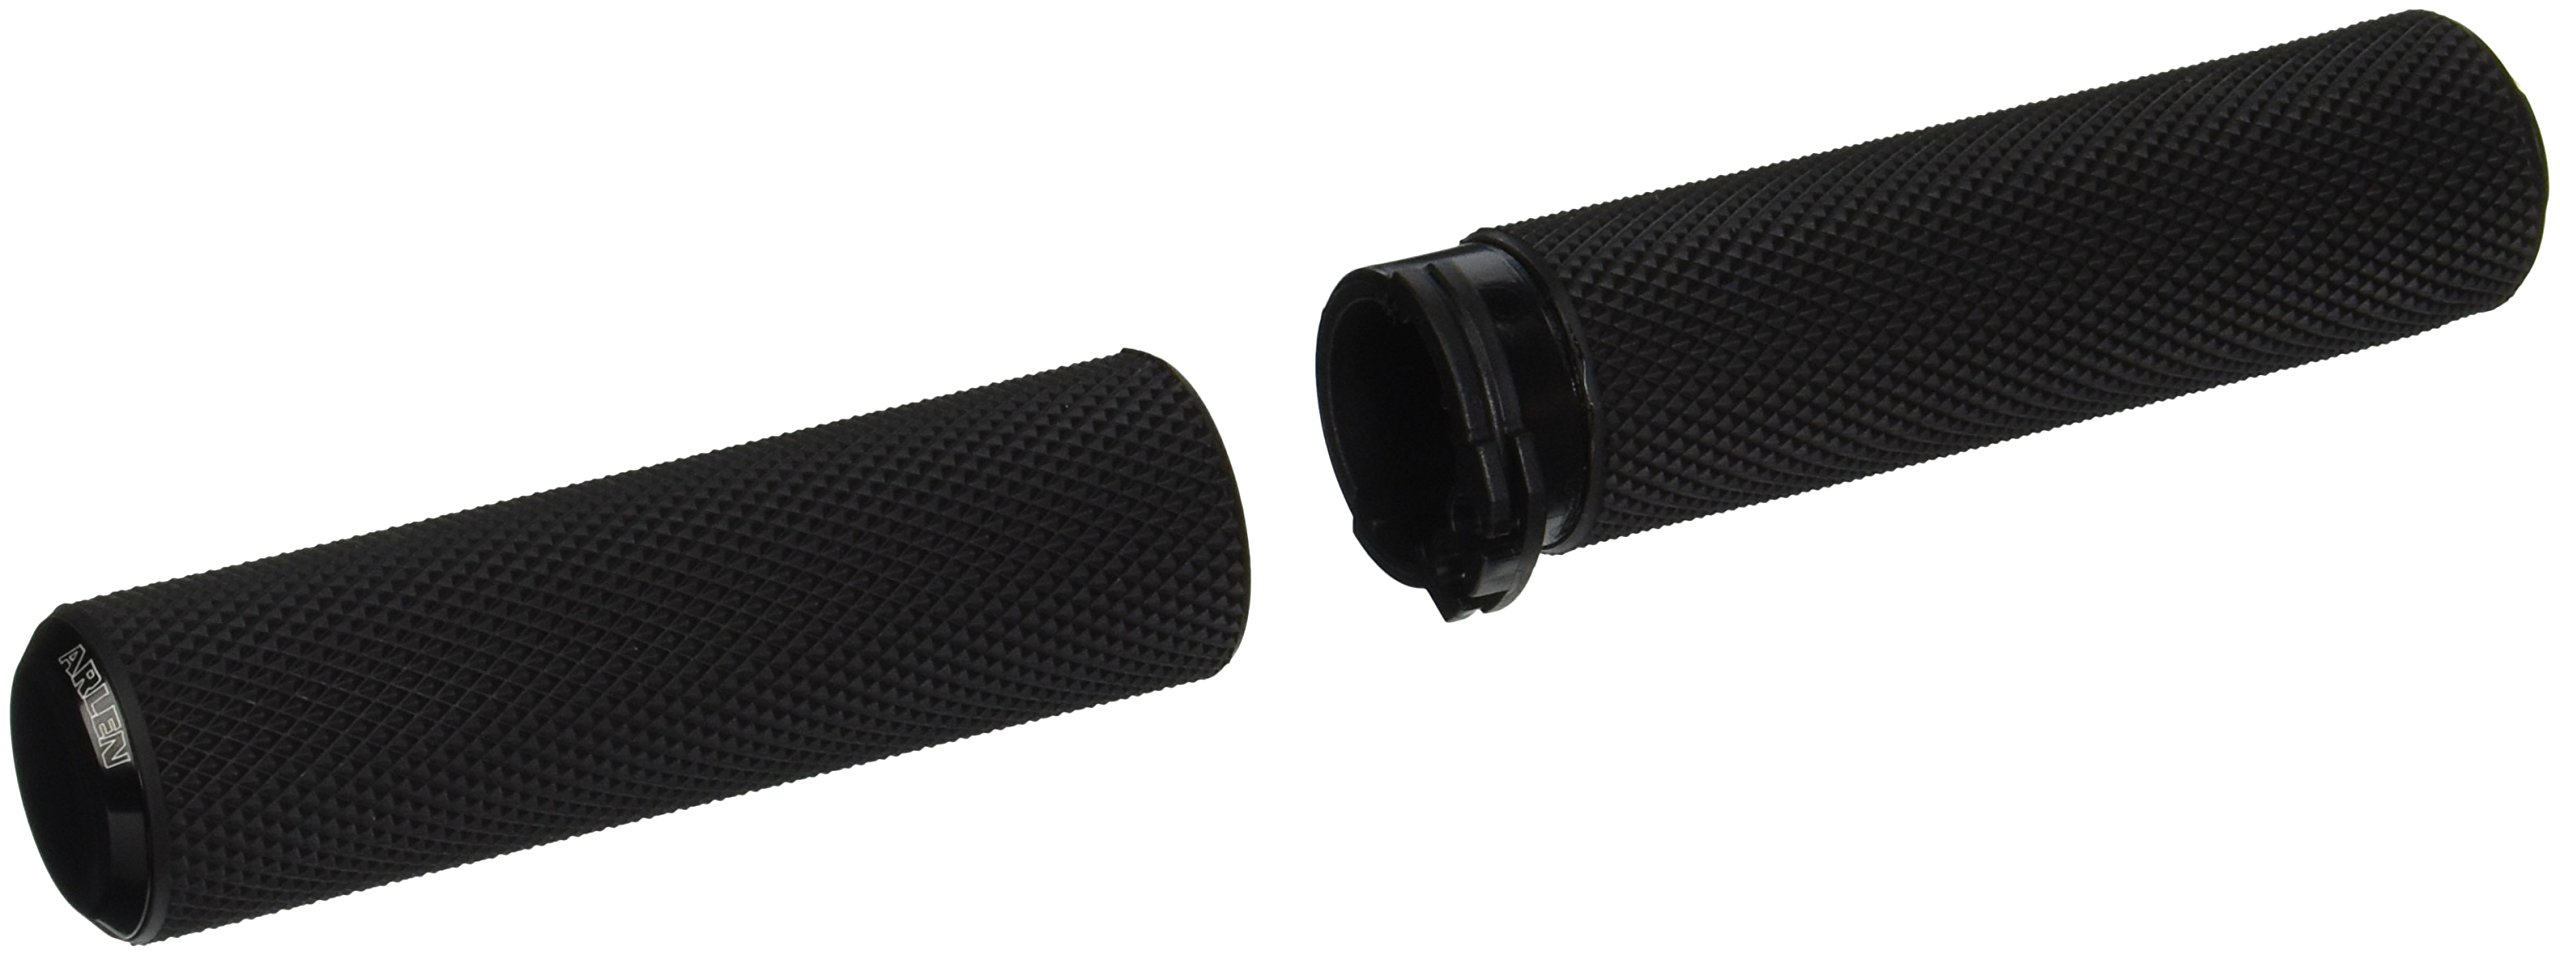 Arlen Ness 07-325 Black Fusion Grip